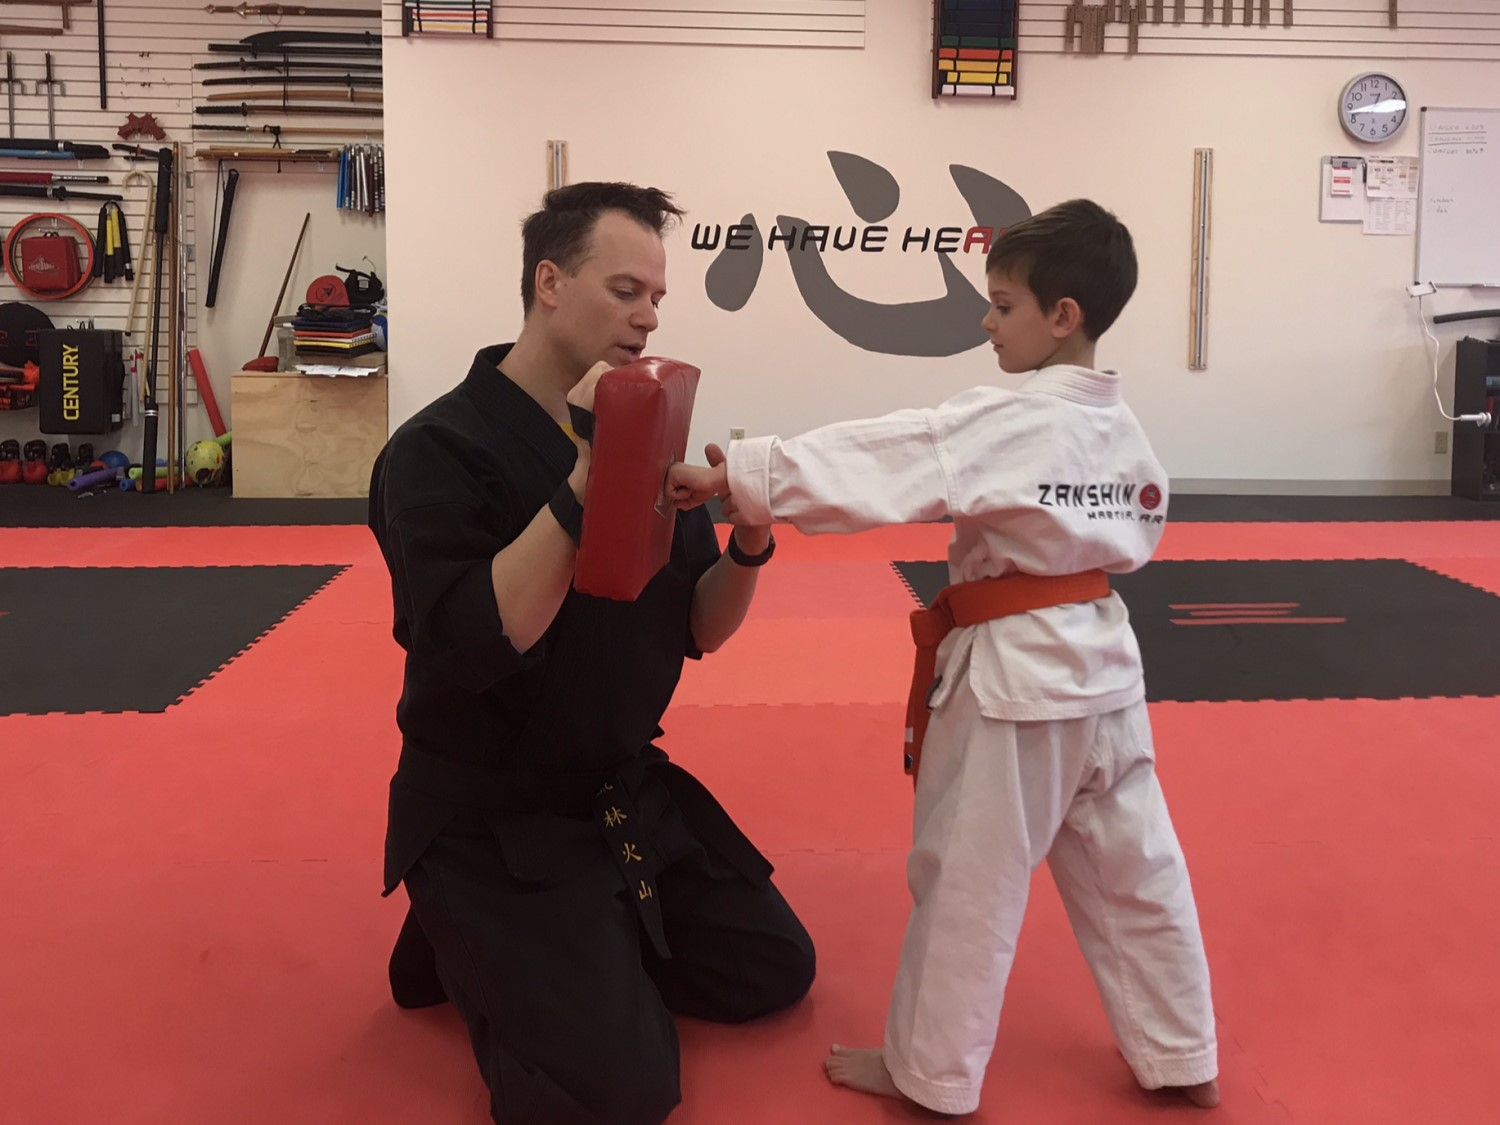 instructor-coaches-kid